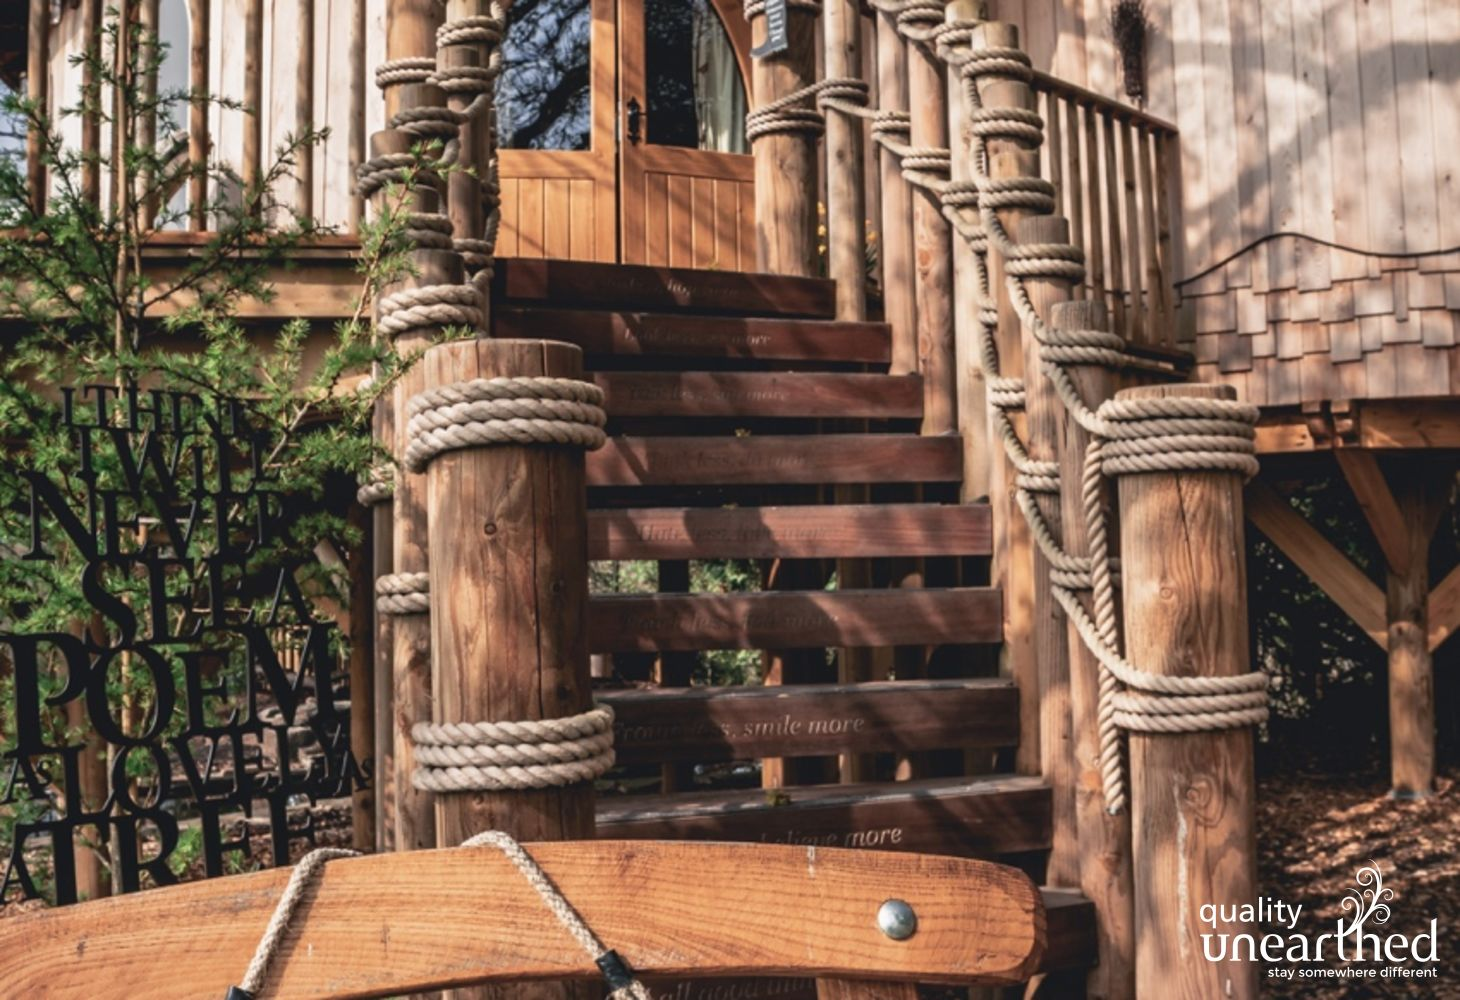 The steps to Trewalter cedar clad treehouse are inscribed with welcoming messages